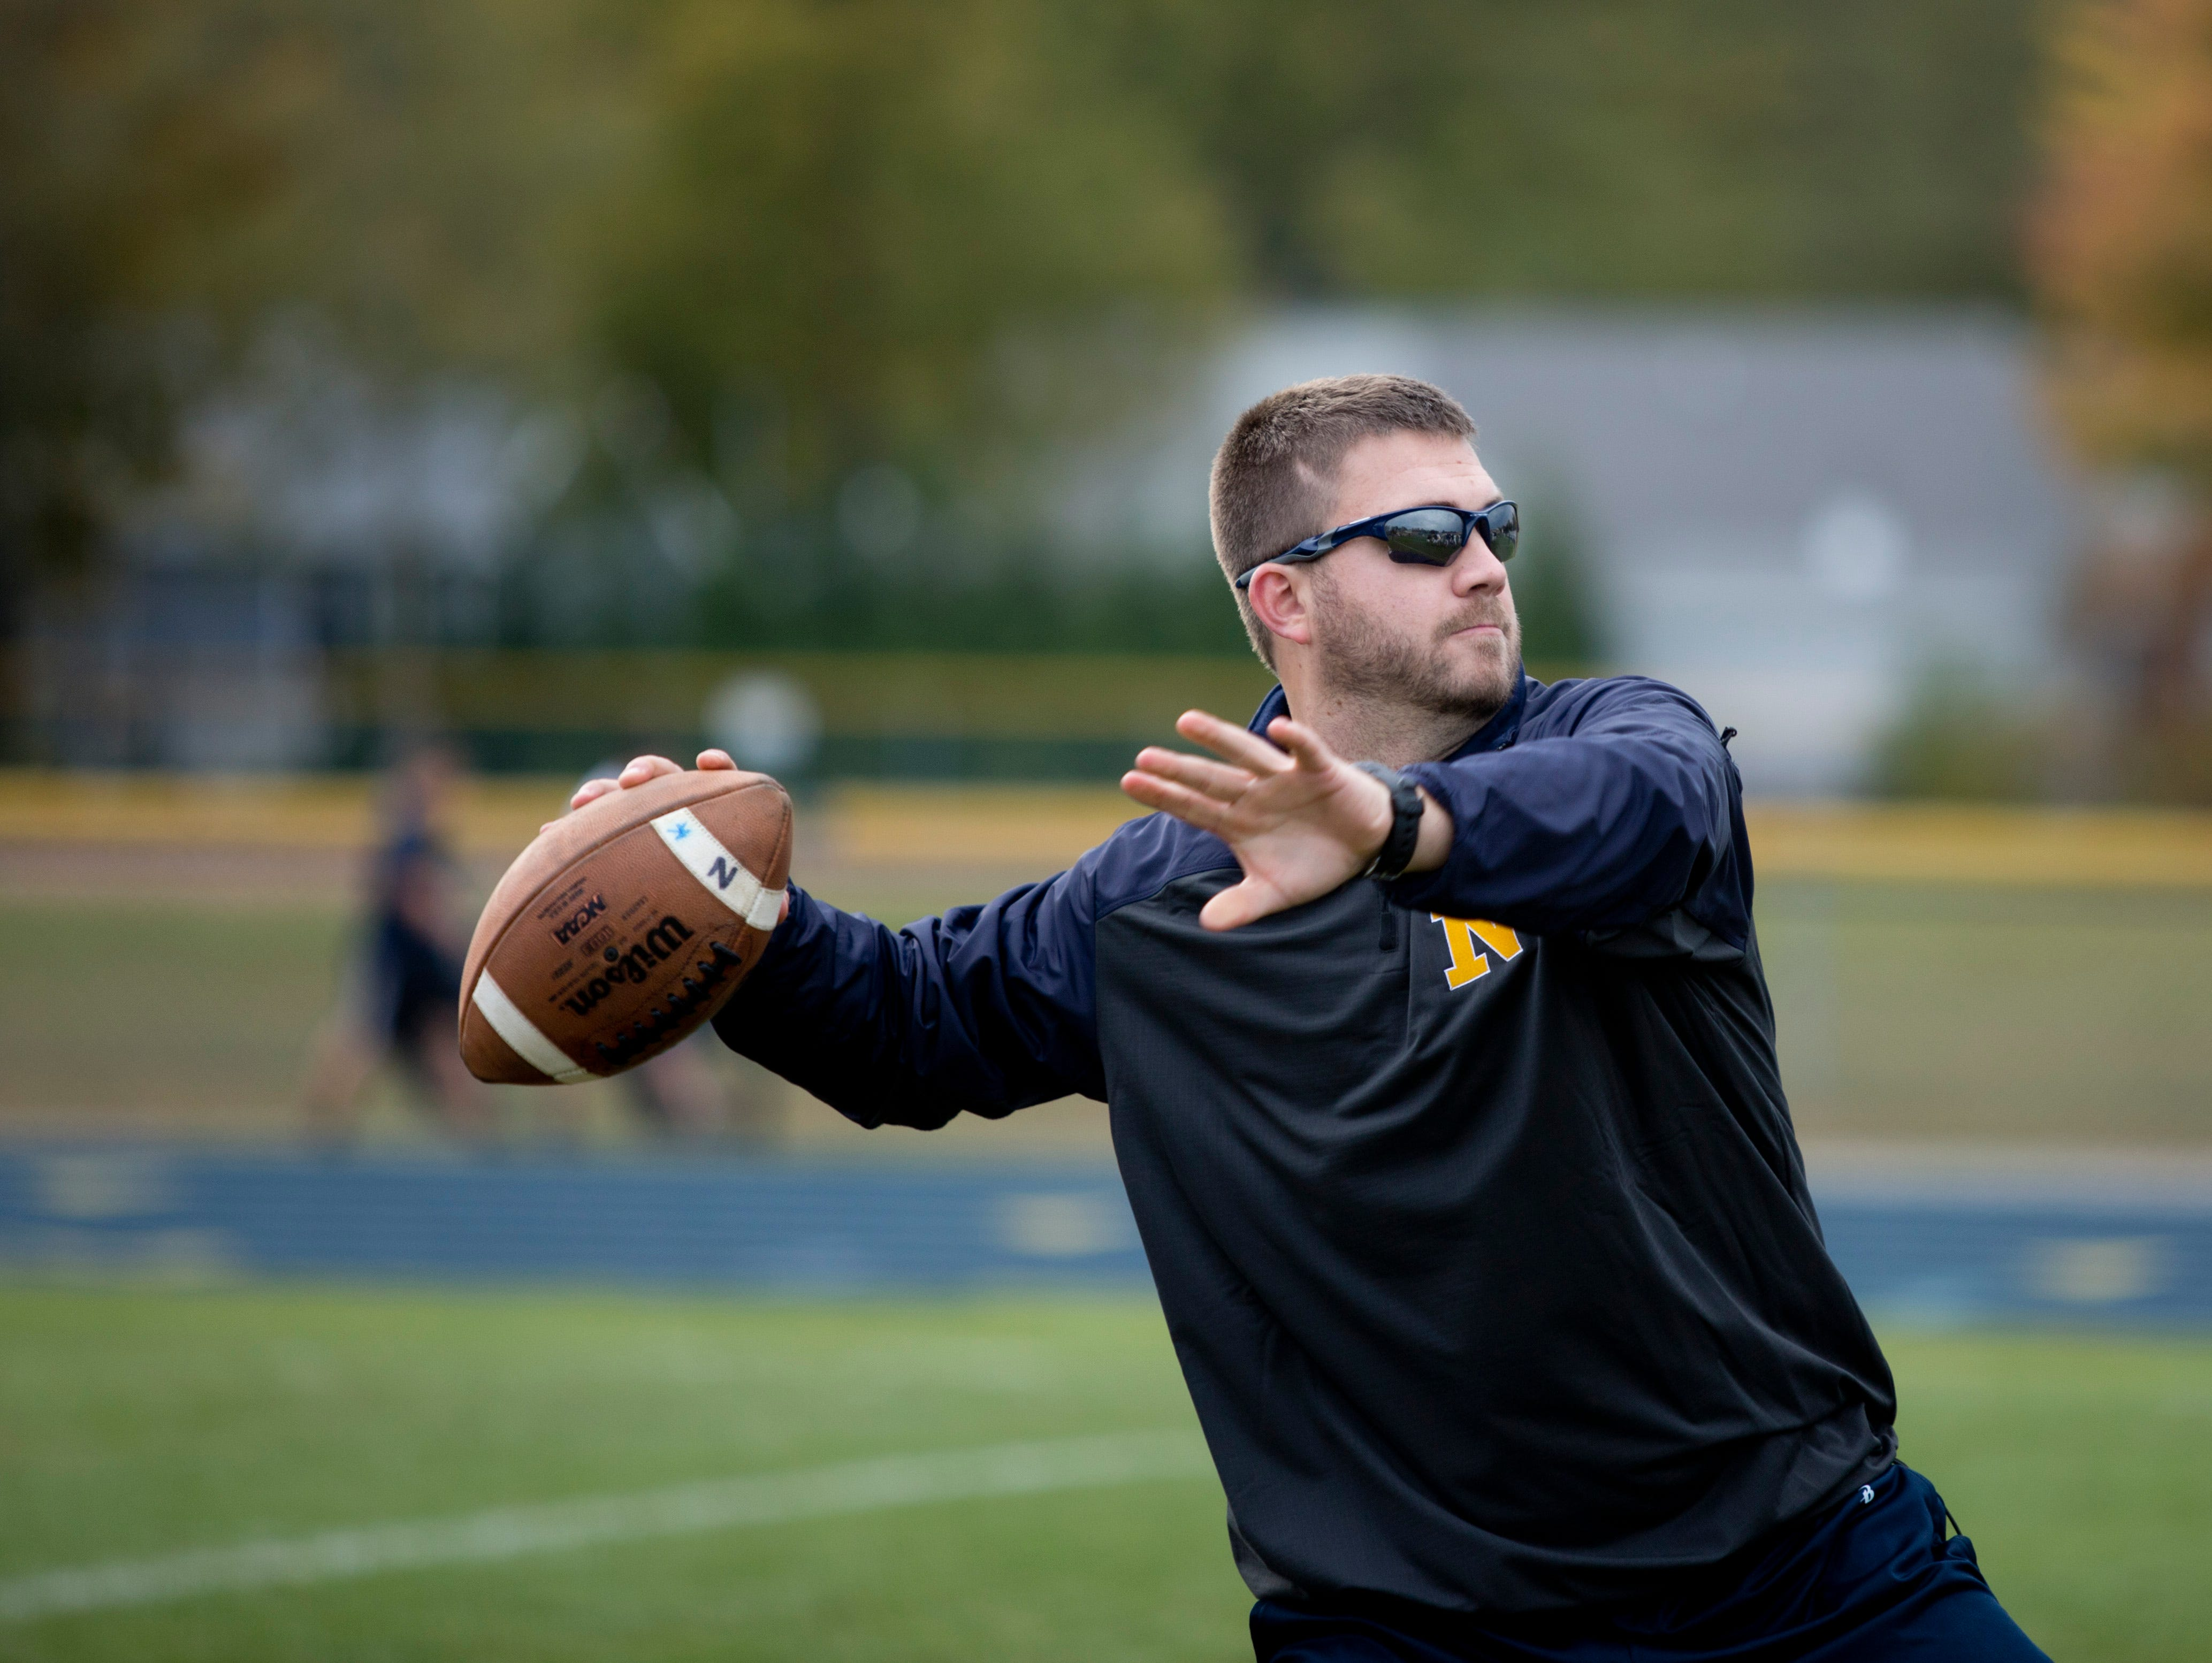 Coach Larry Roelens throws a pass to players during practice Wednesday, October 21, 2015 at Port Huron Northern High School.